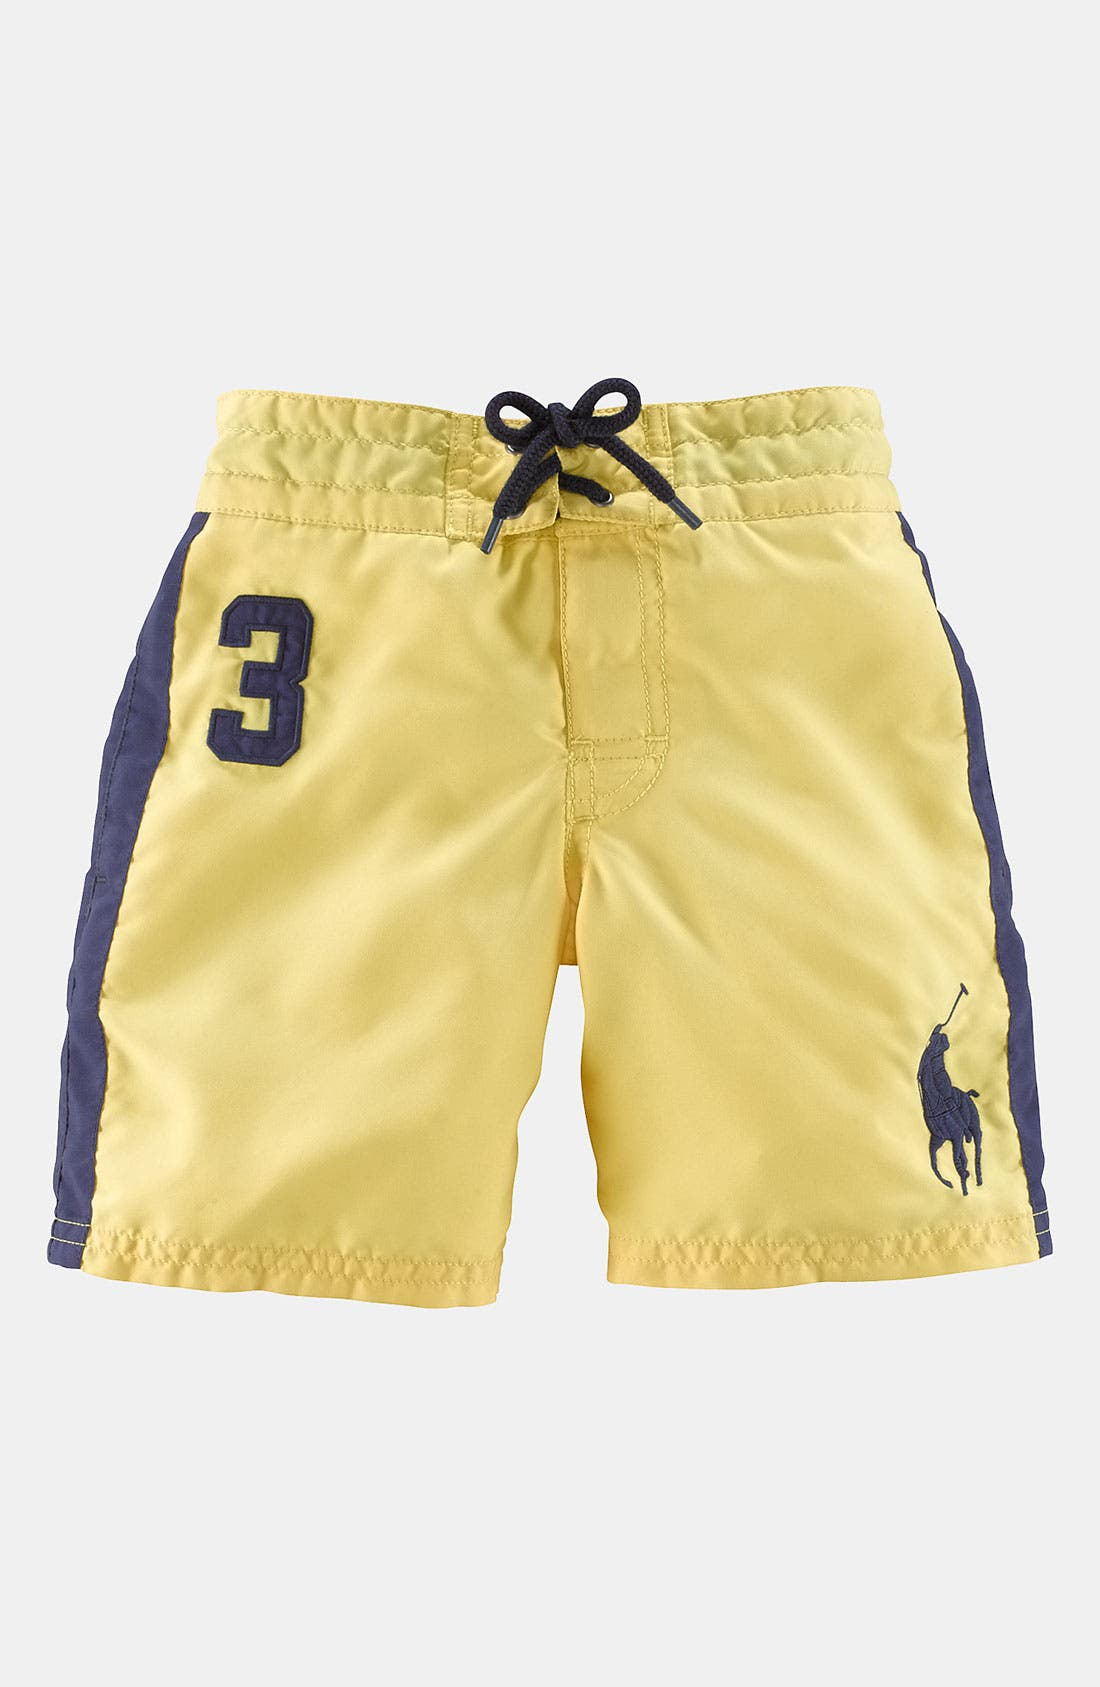 Main Image - Ralph Lauren Woven Cotton Swim Trunks (Toddler)